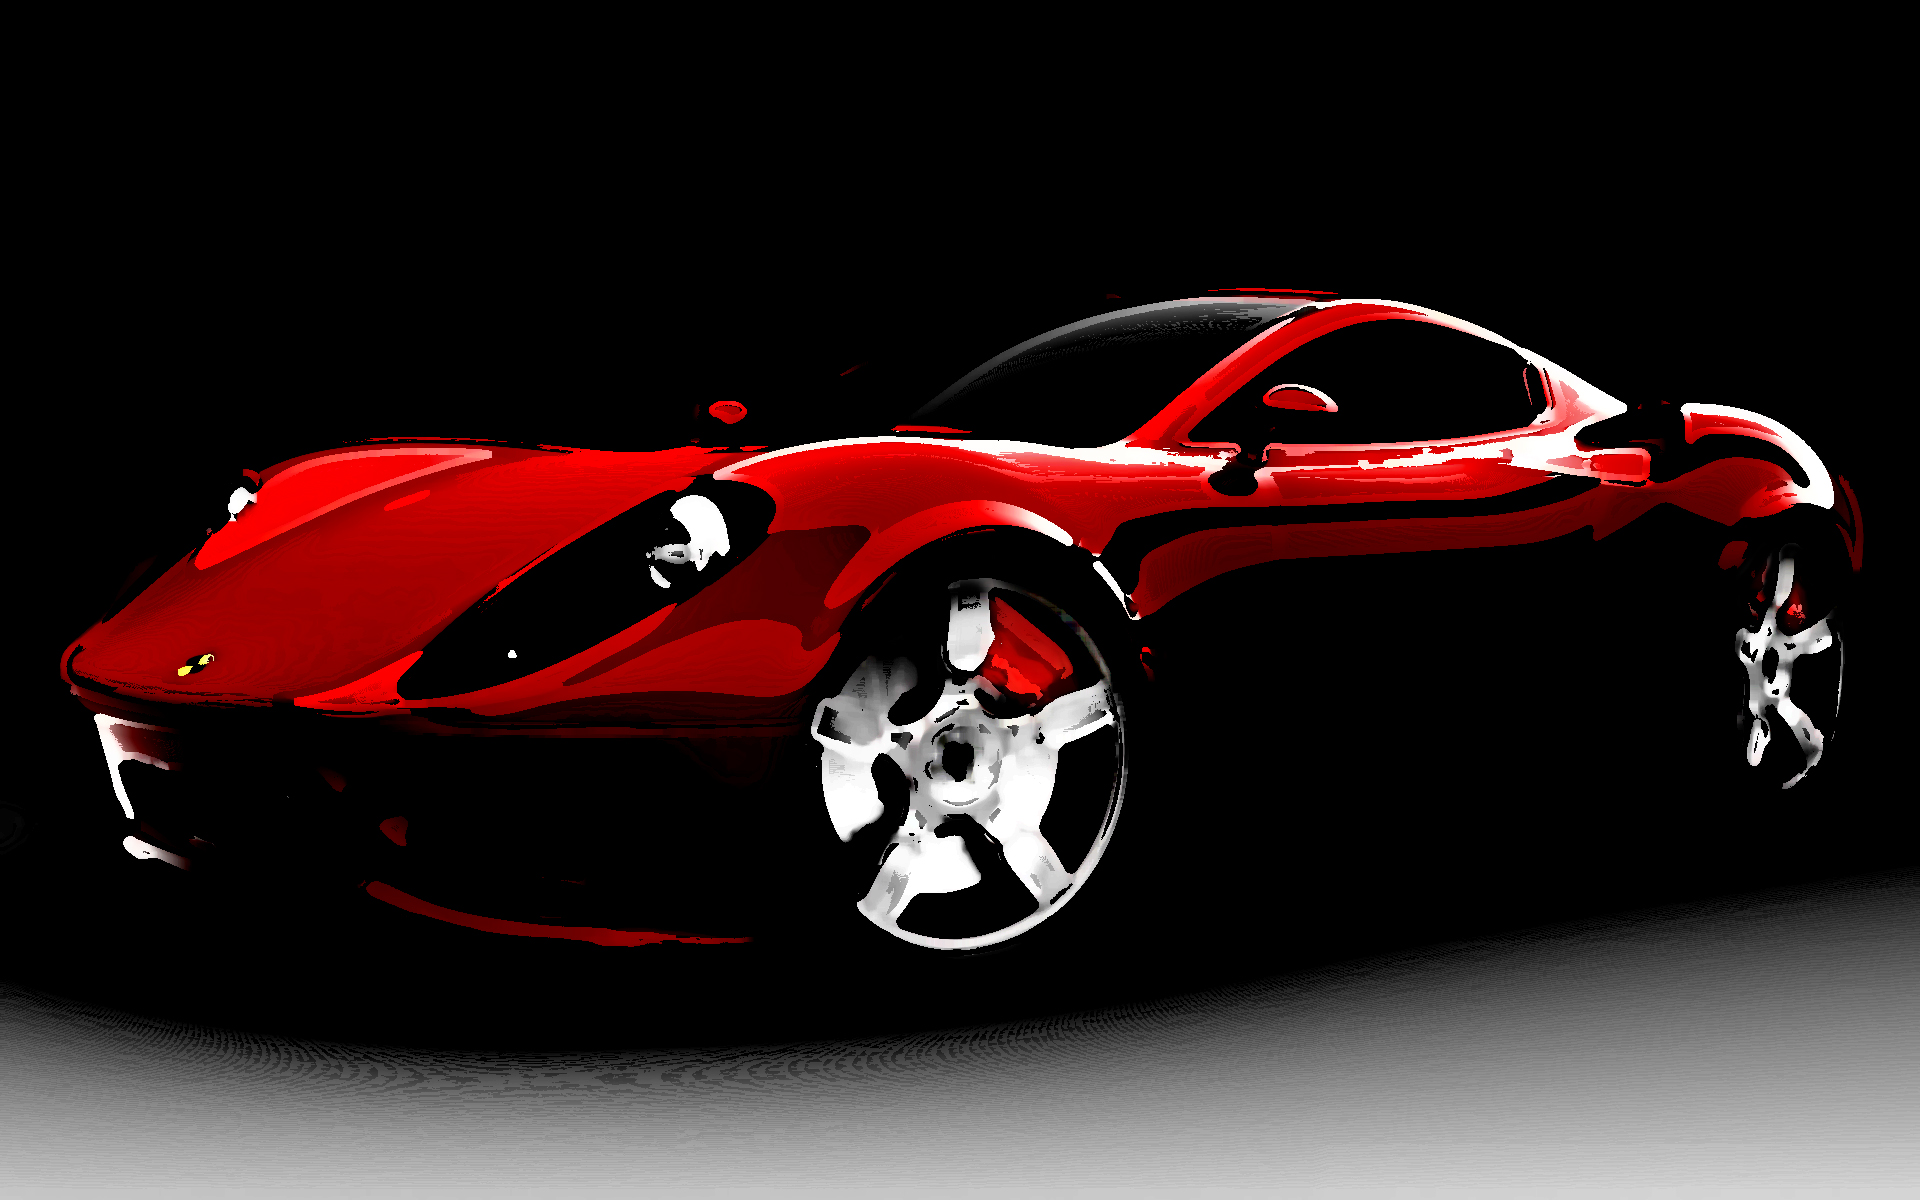 FerrariAaron By Design Cars Free Download Image Of